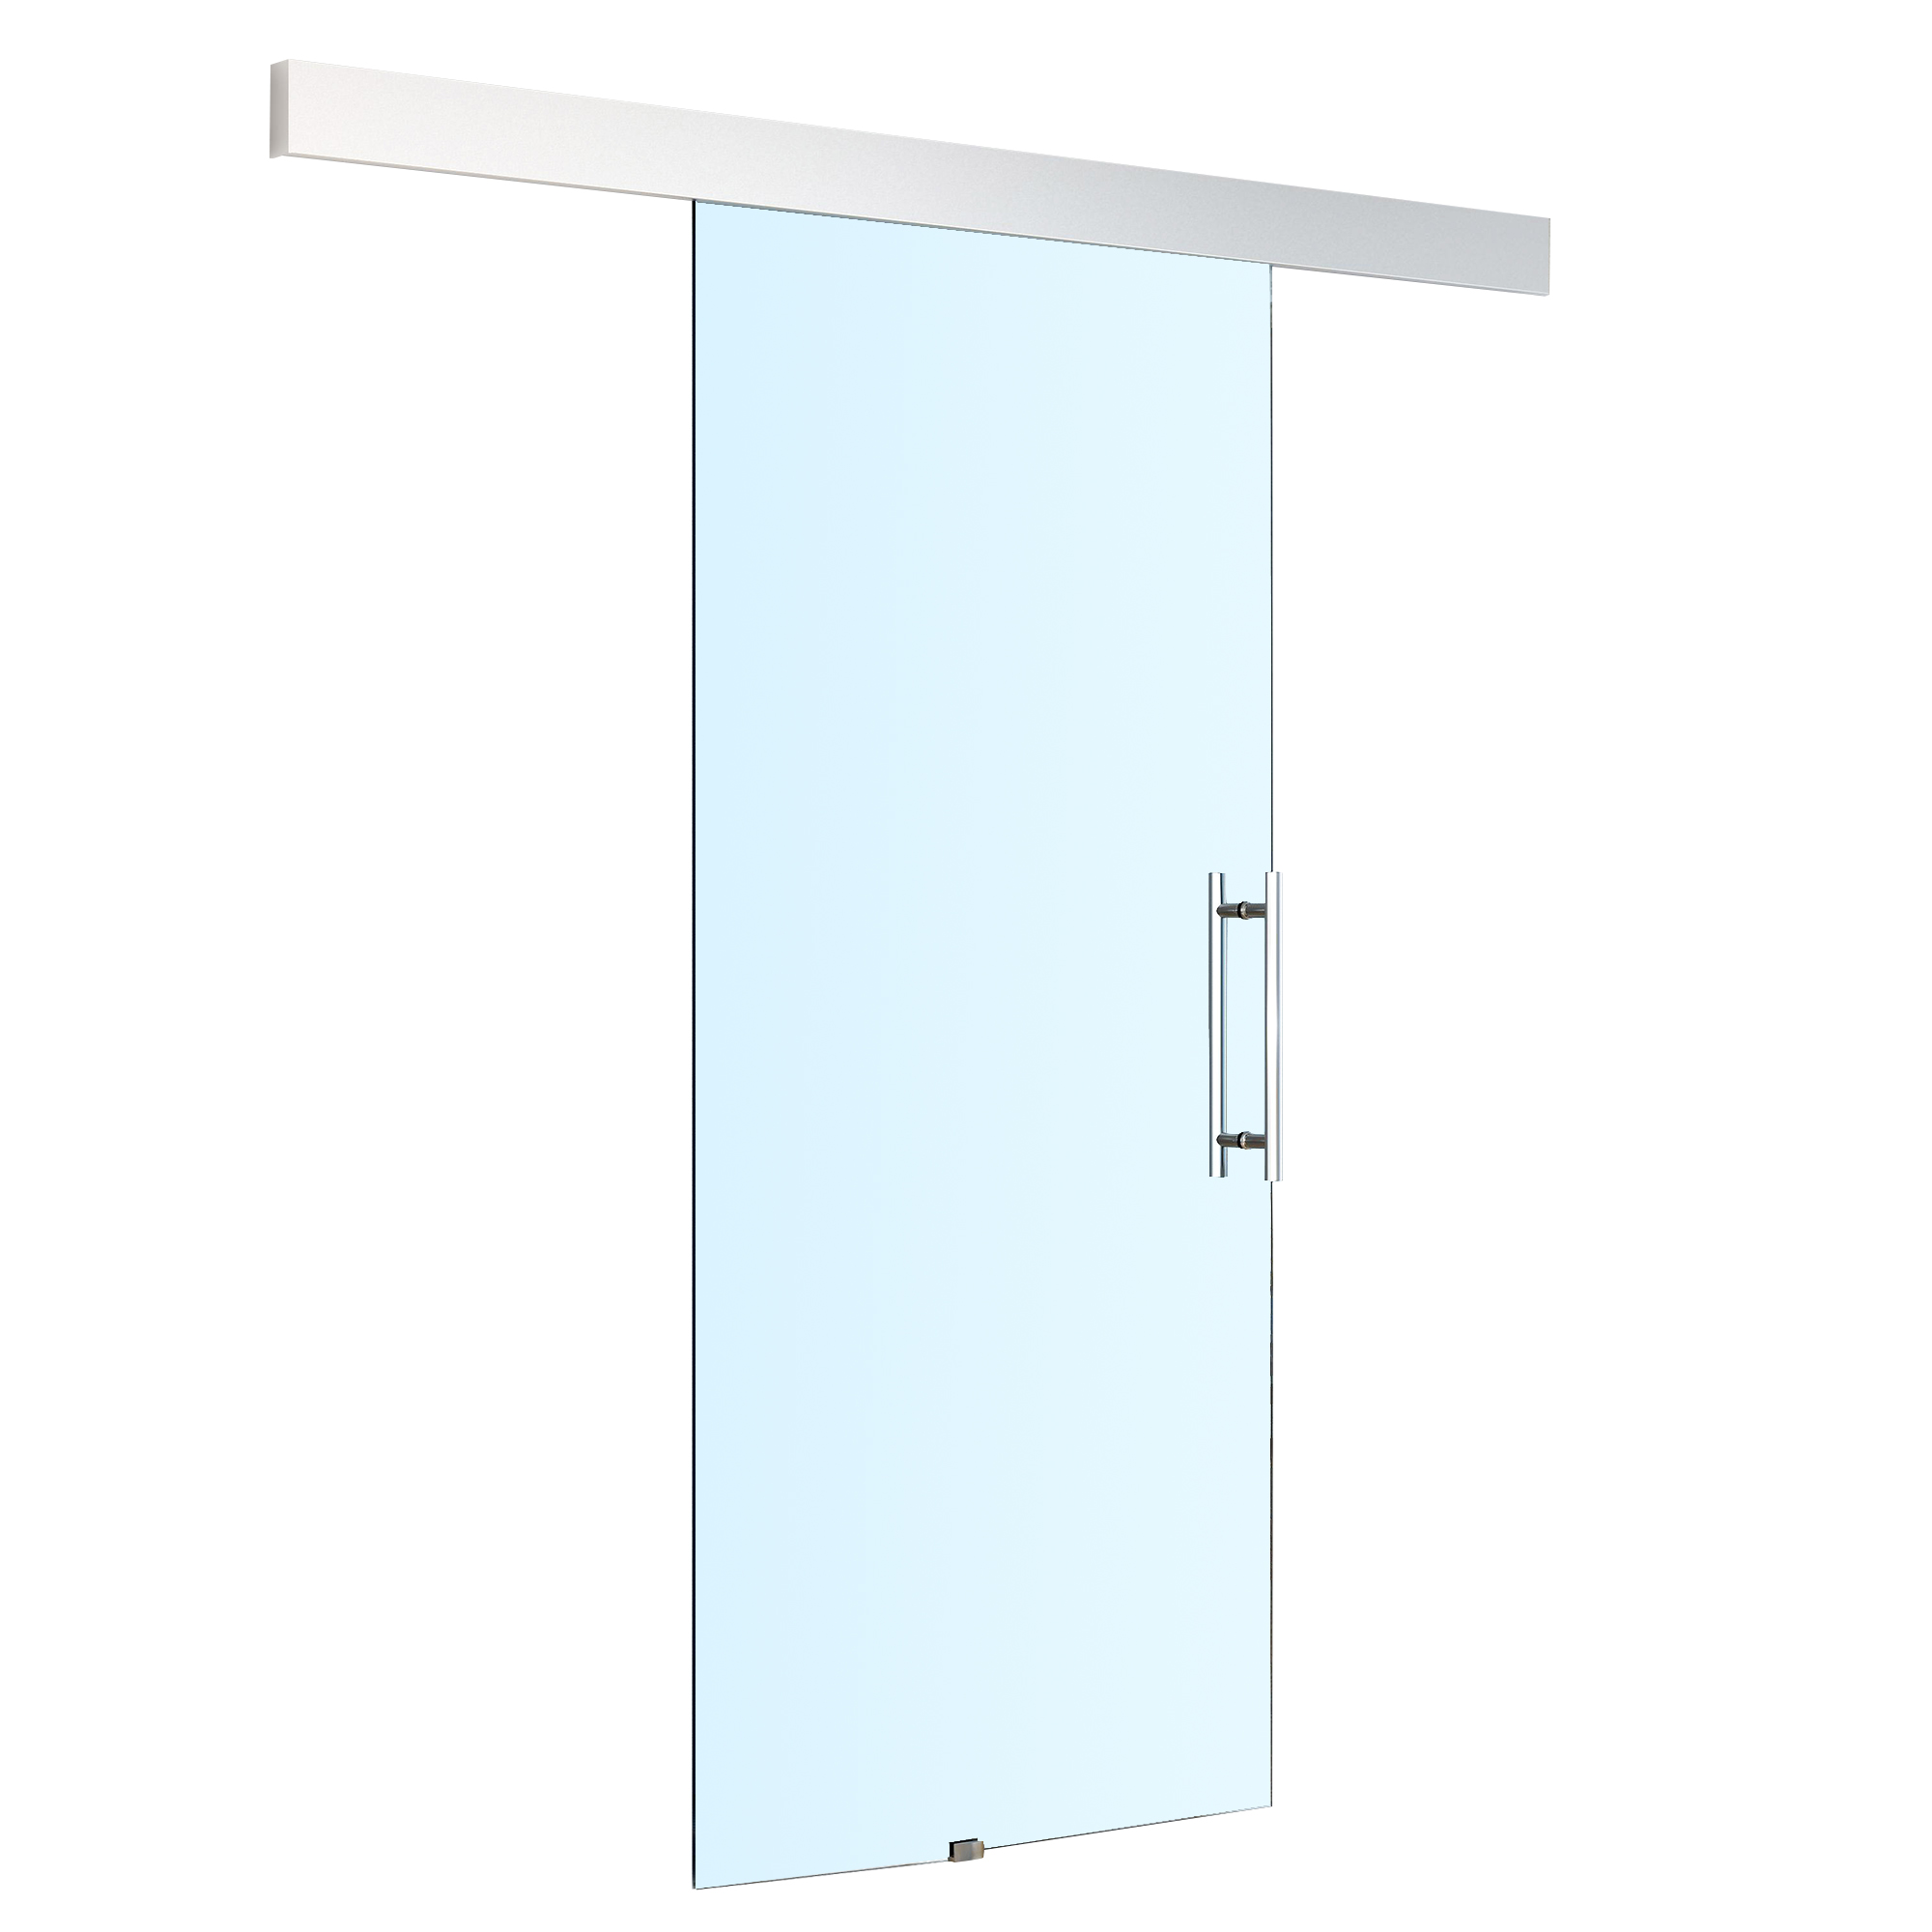 HOMCOM Transparent Glass Sliding Door Track Silent Handle Interior 200 × 213cm